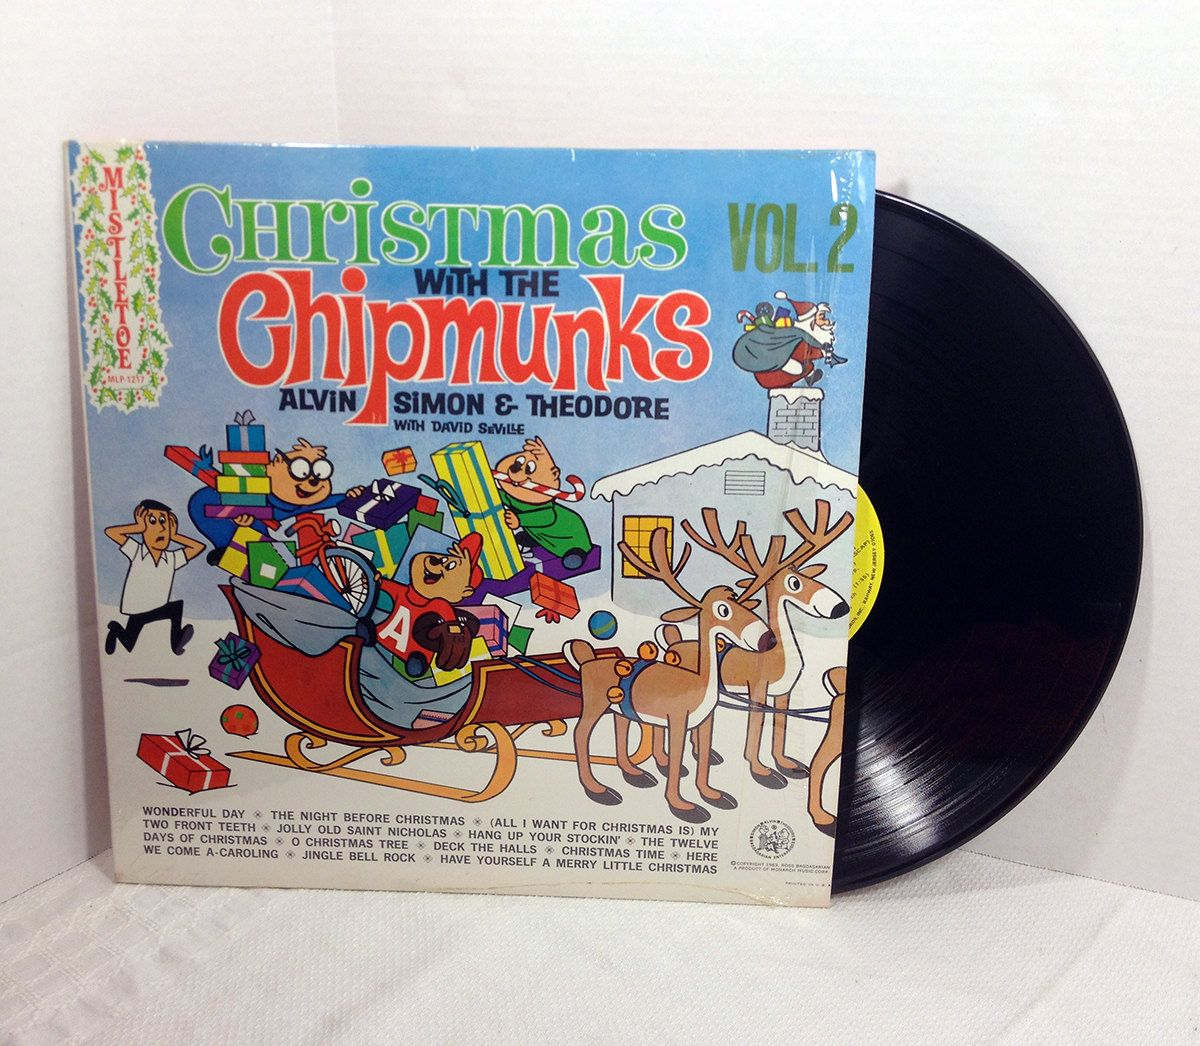 Christmas With The Chipmunks Vol 2 1975 Vinyl Record vintage LP 70's Holiday Kids